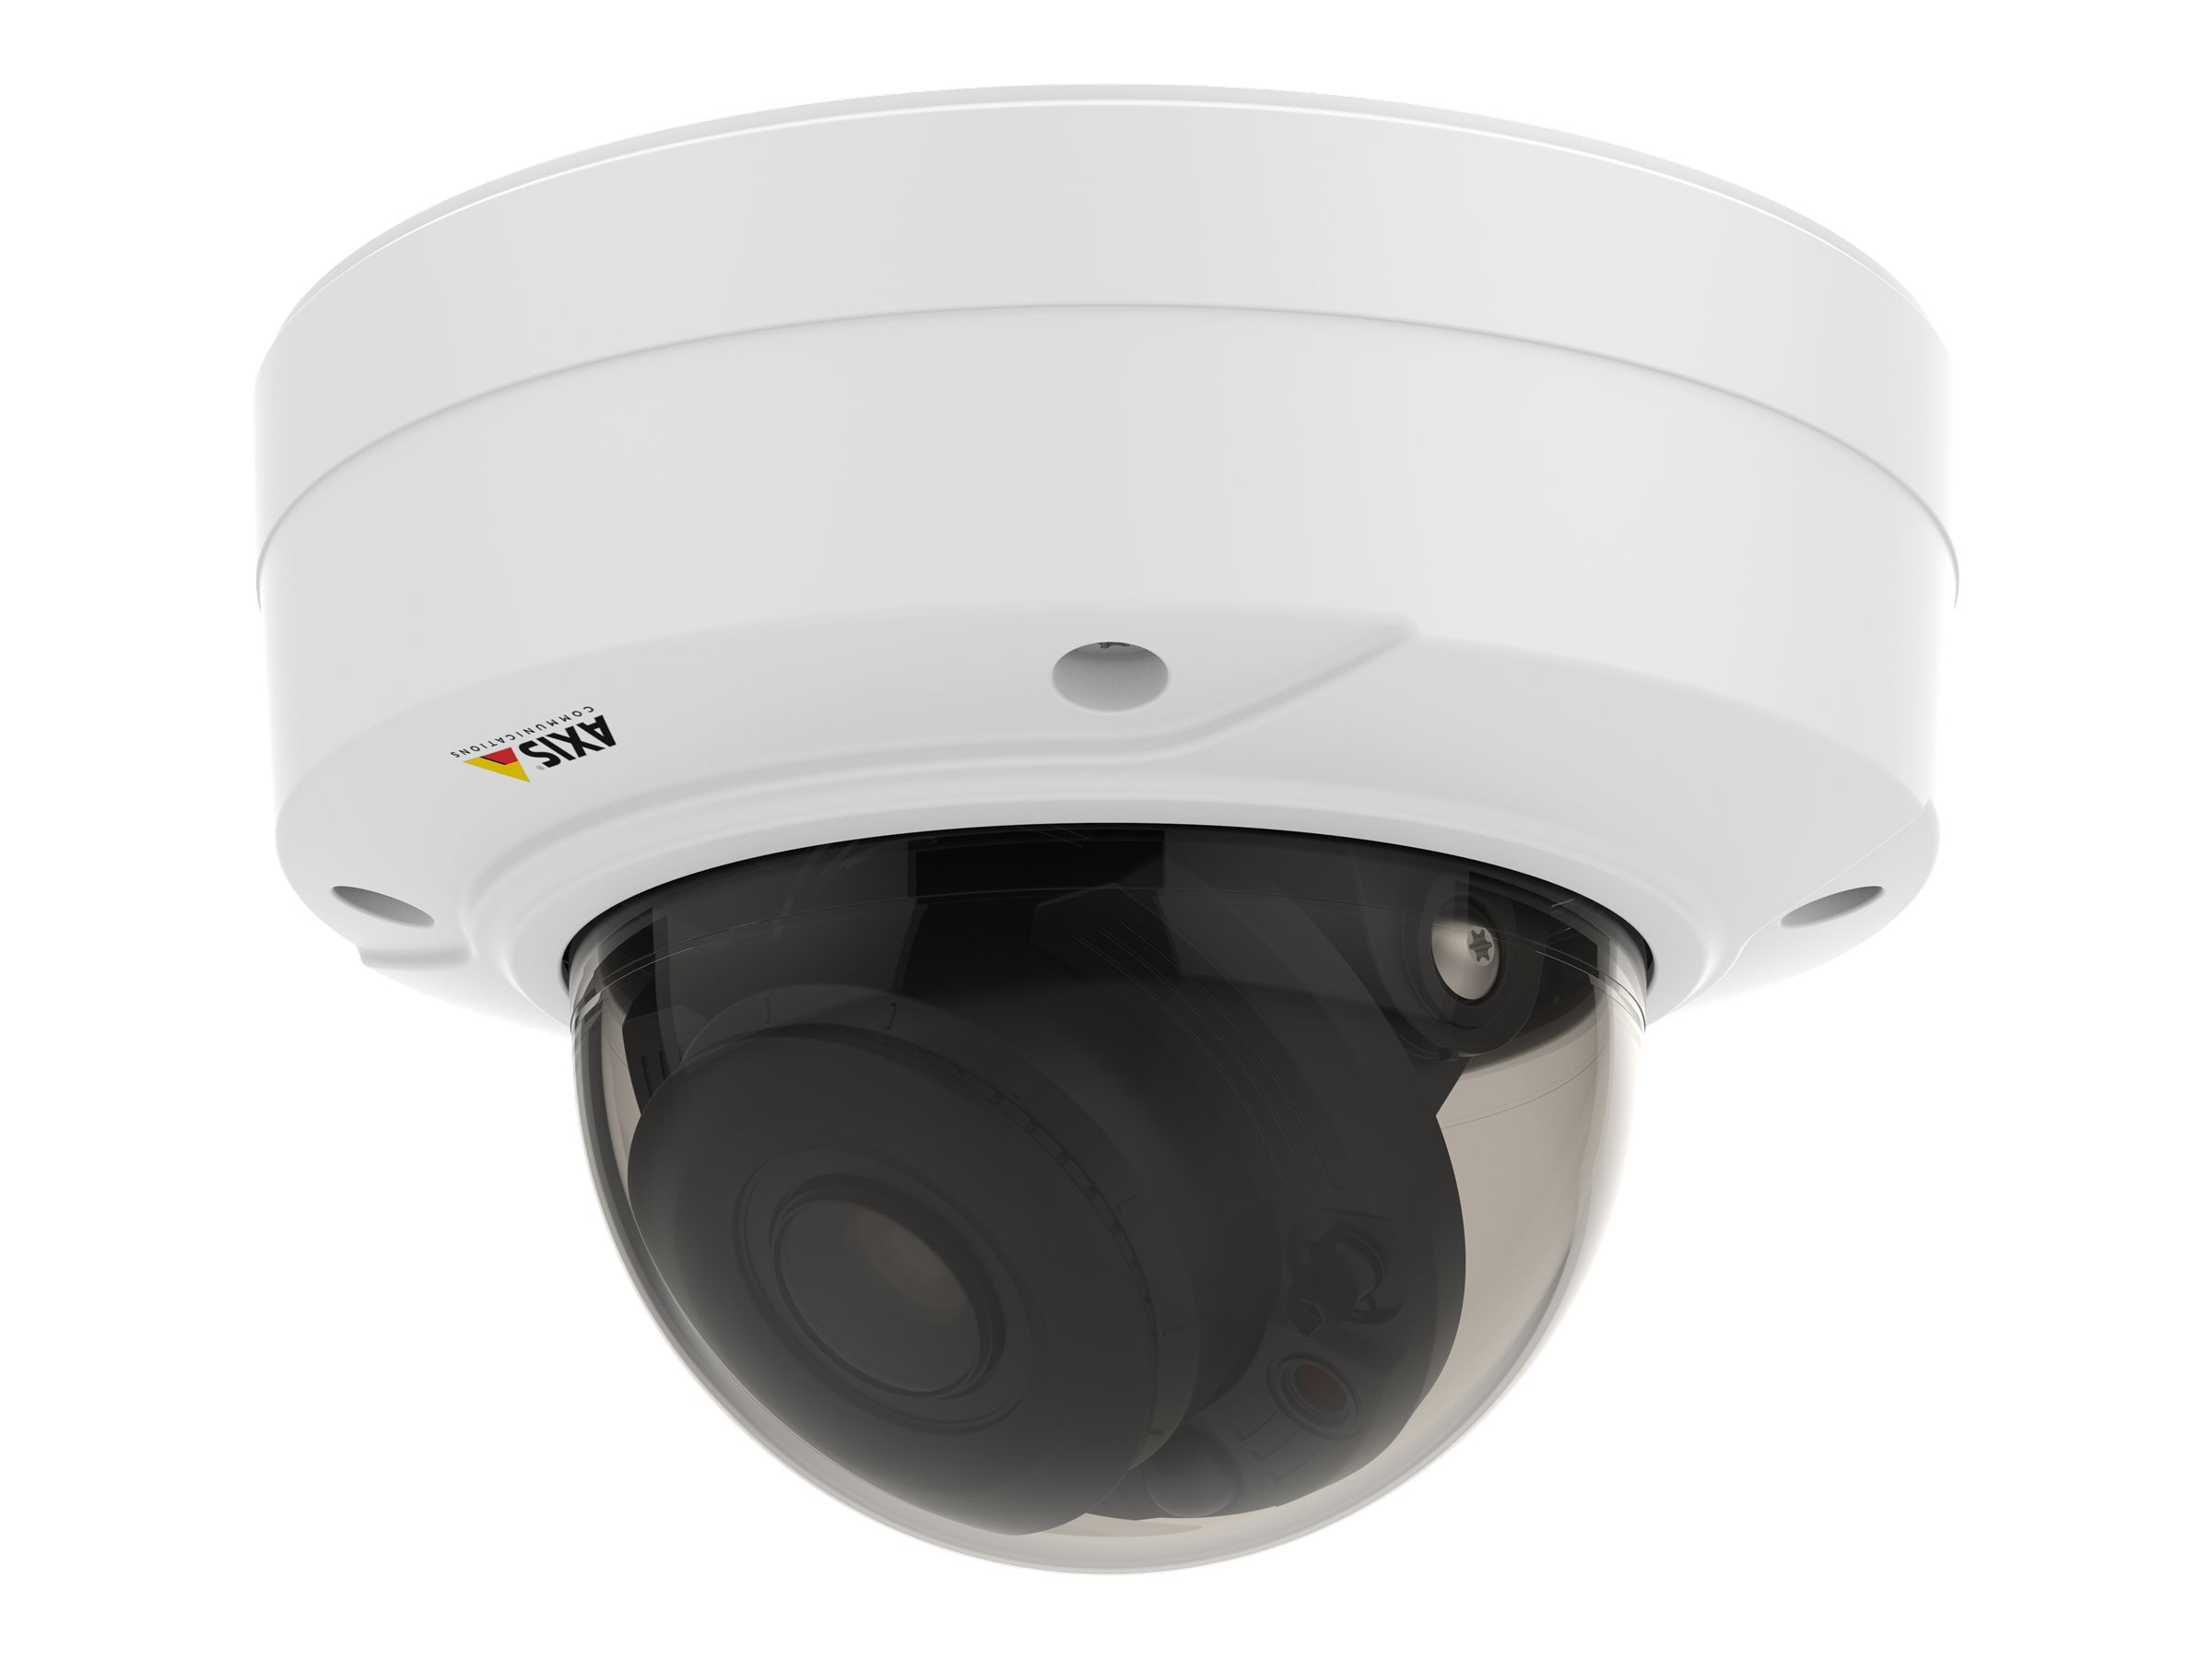 Axis P3225-LVE 1080p Day Night Fixed Dome Camera, 0760-001, 23410977, Cameras - Security